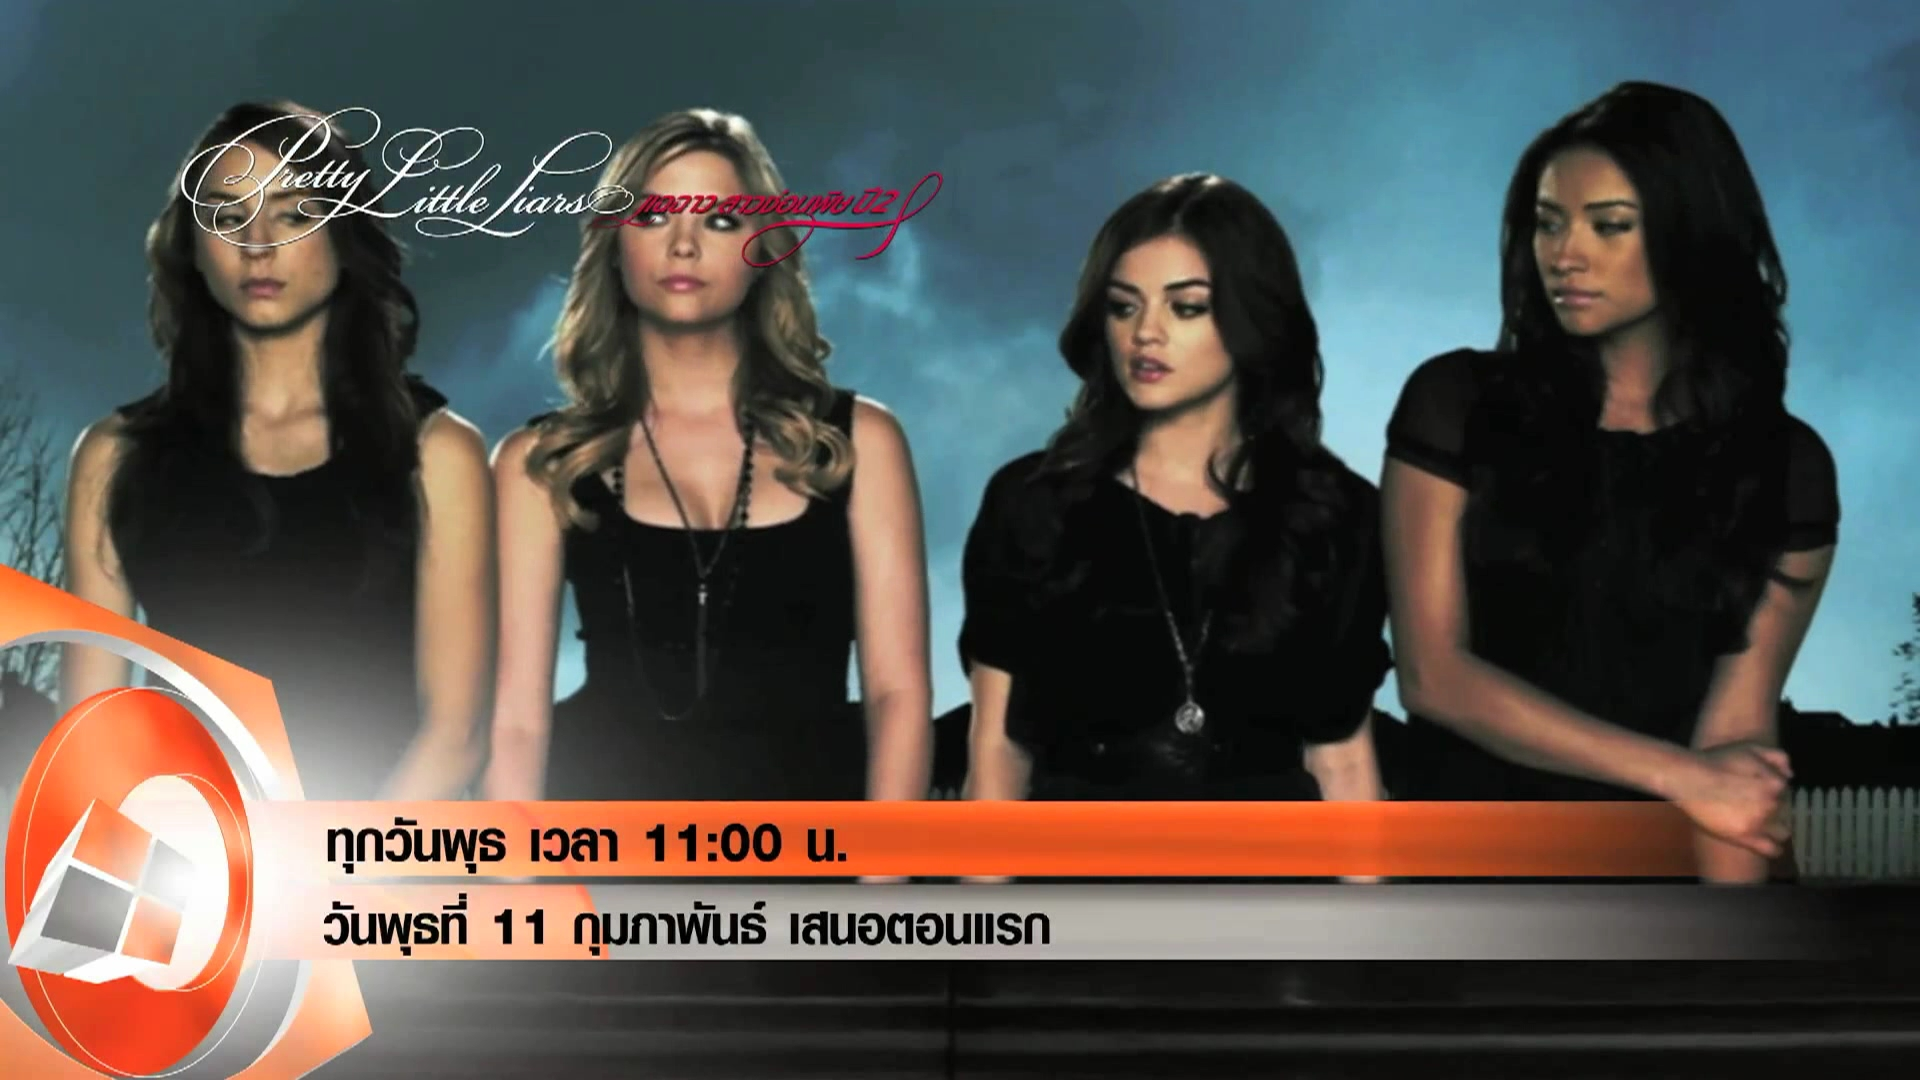 Promo_On580211(WED)_PrettyLittleLiars(S02)_(EP01-Firstrun)_0100.mp4_000050853